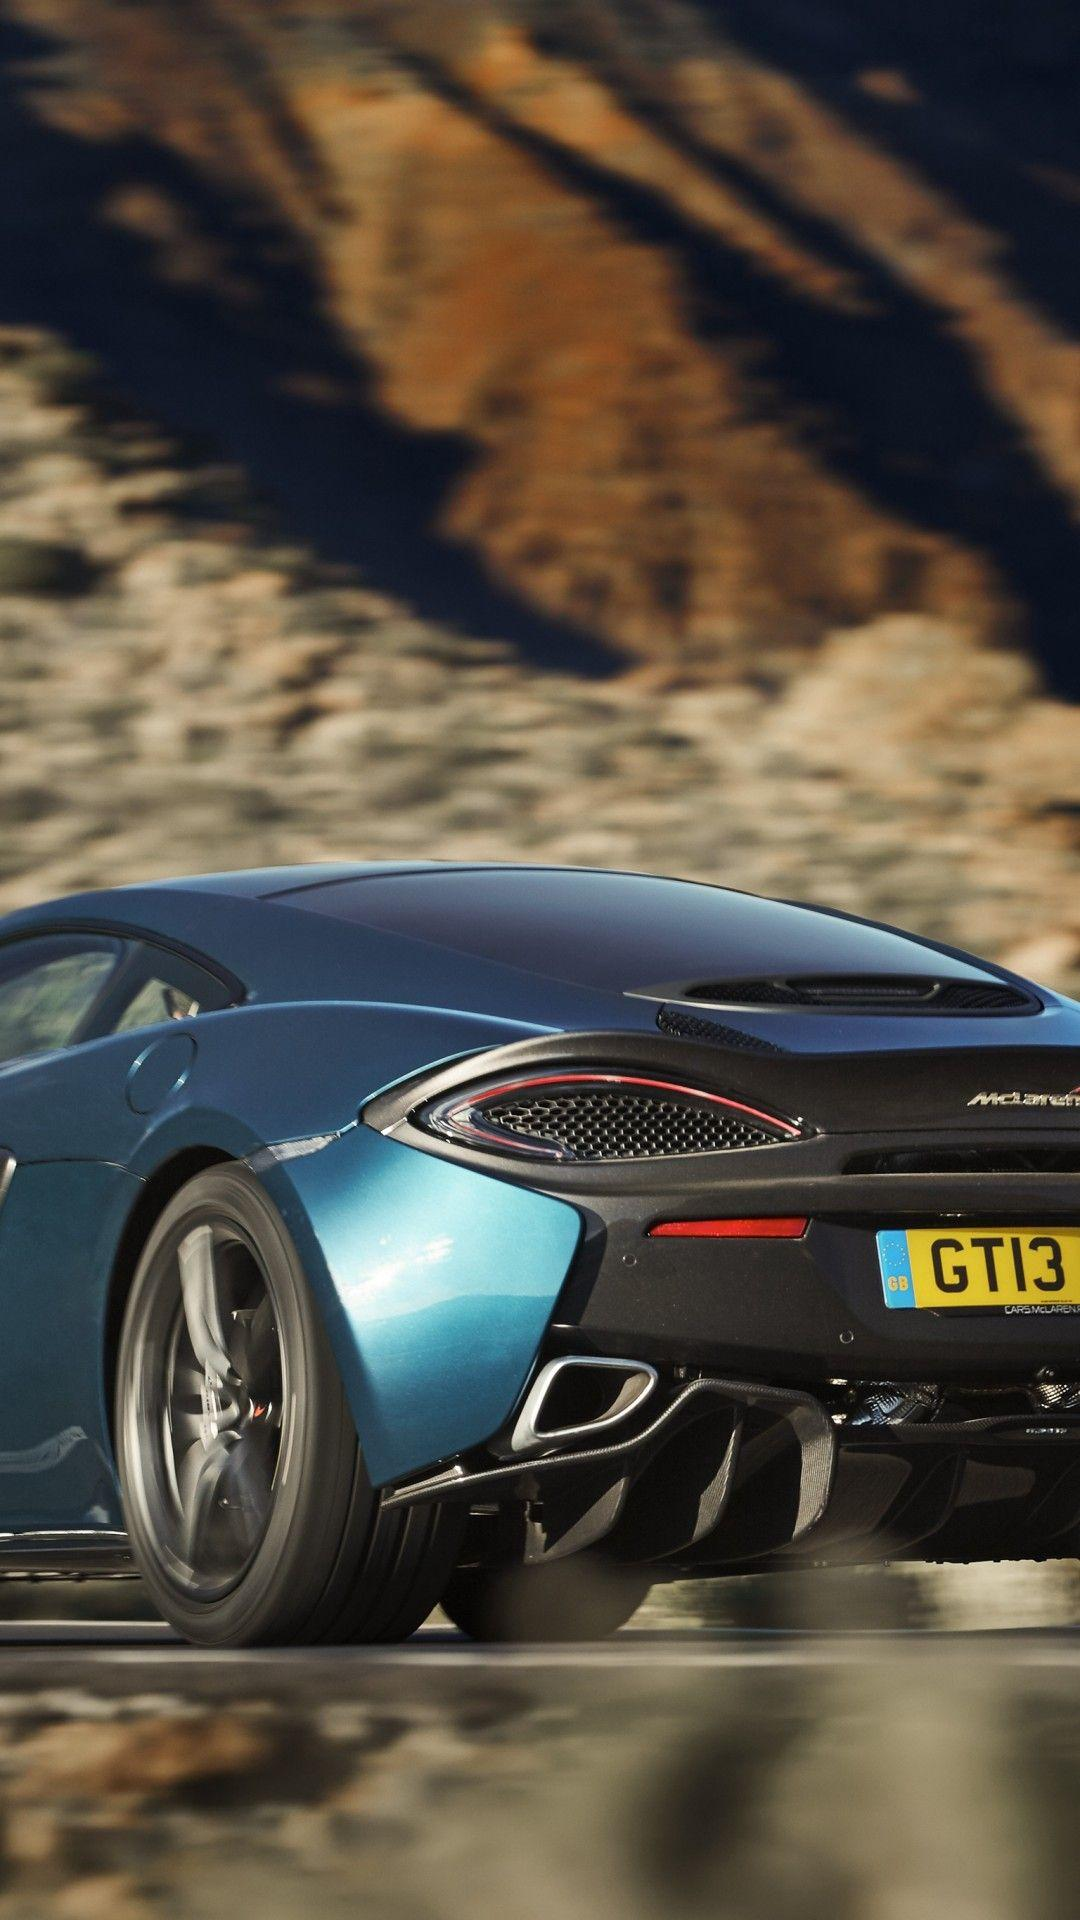 Download 1080x1920 Mclaren 570gt, Back View, Black And Blue, Cars ...